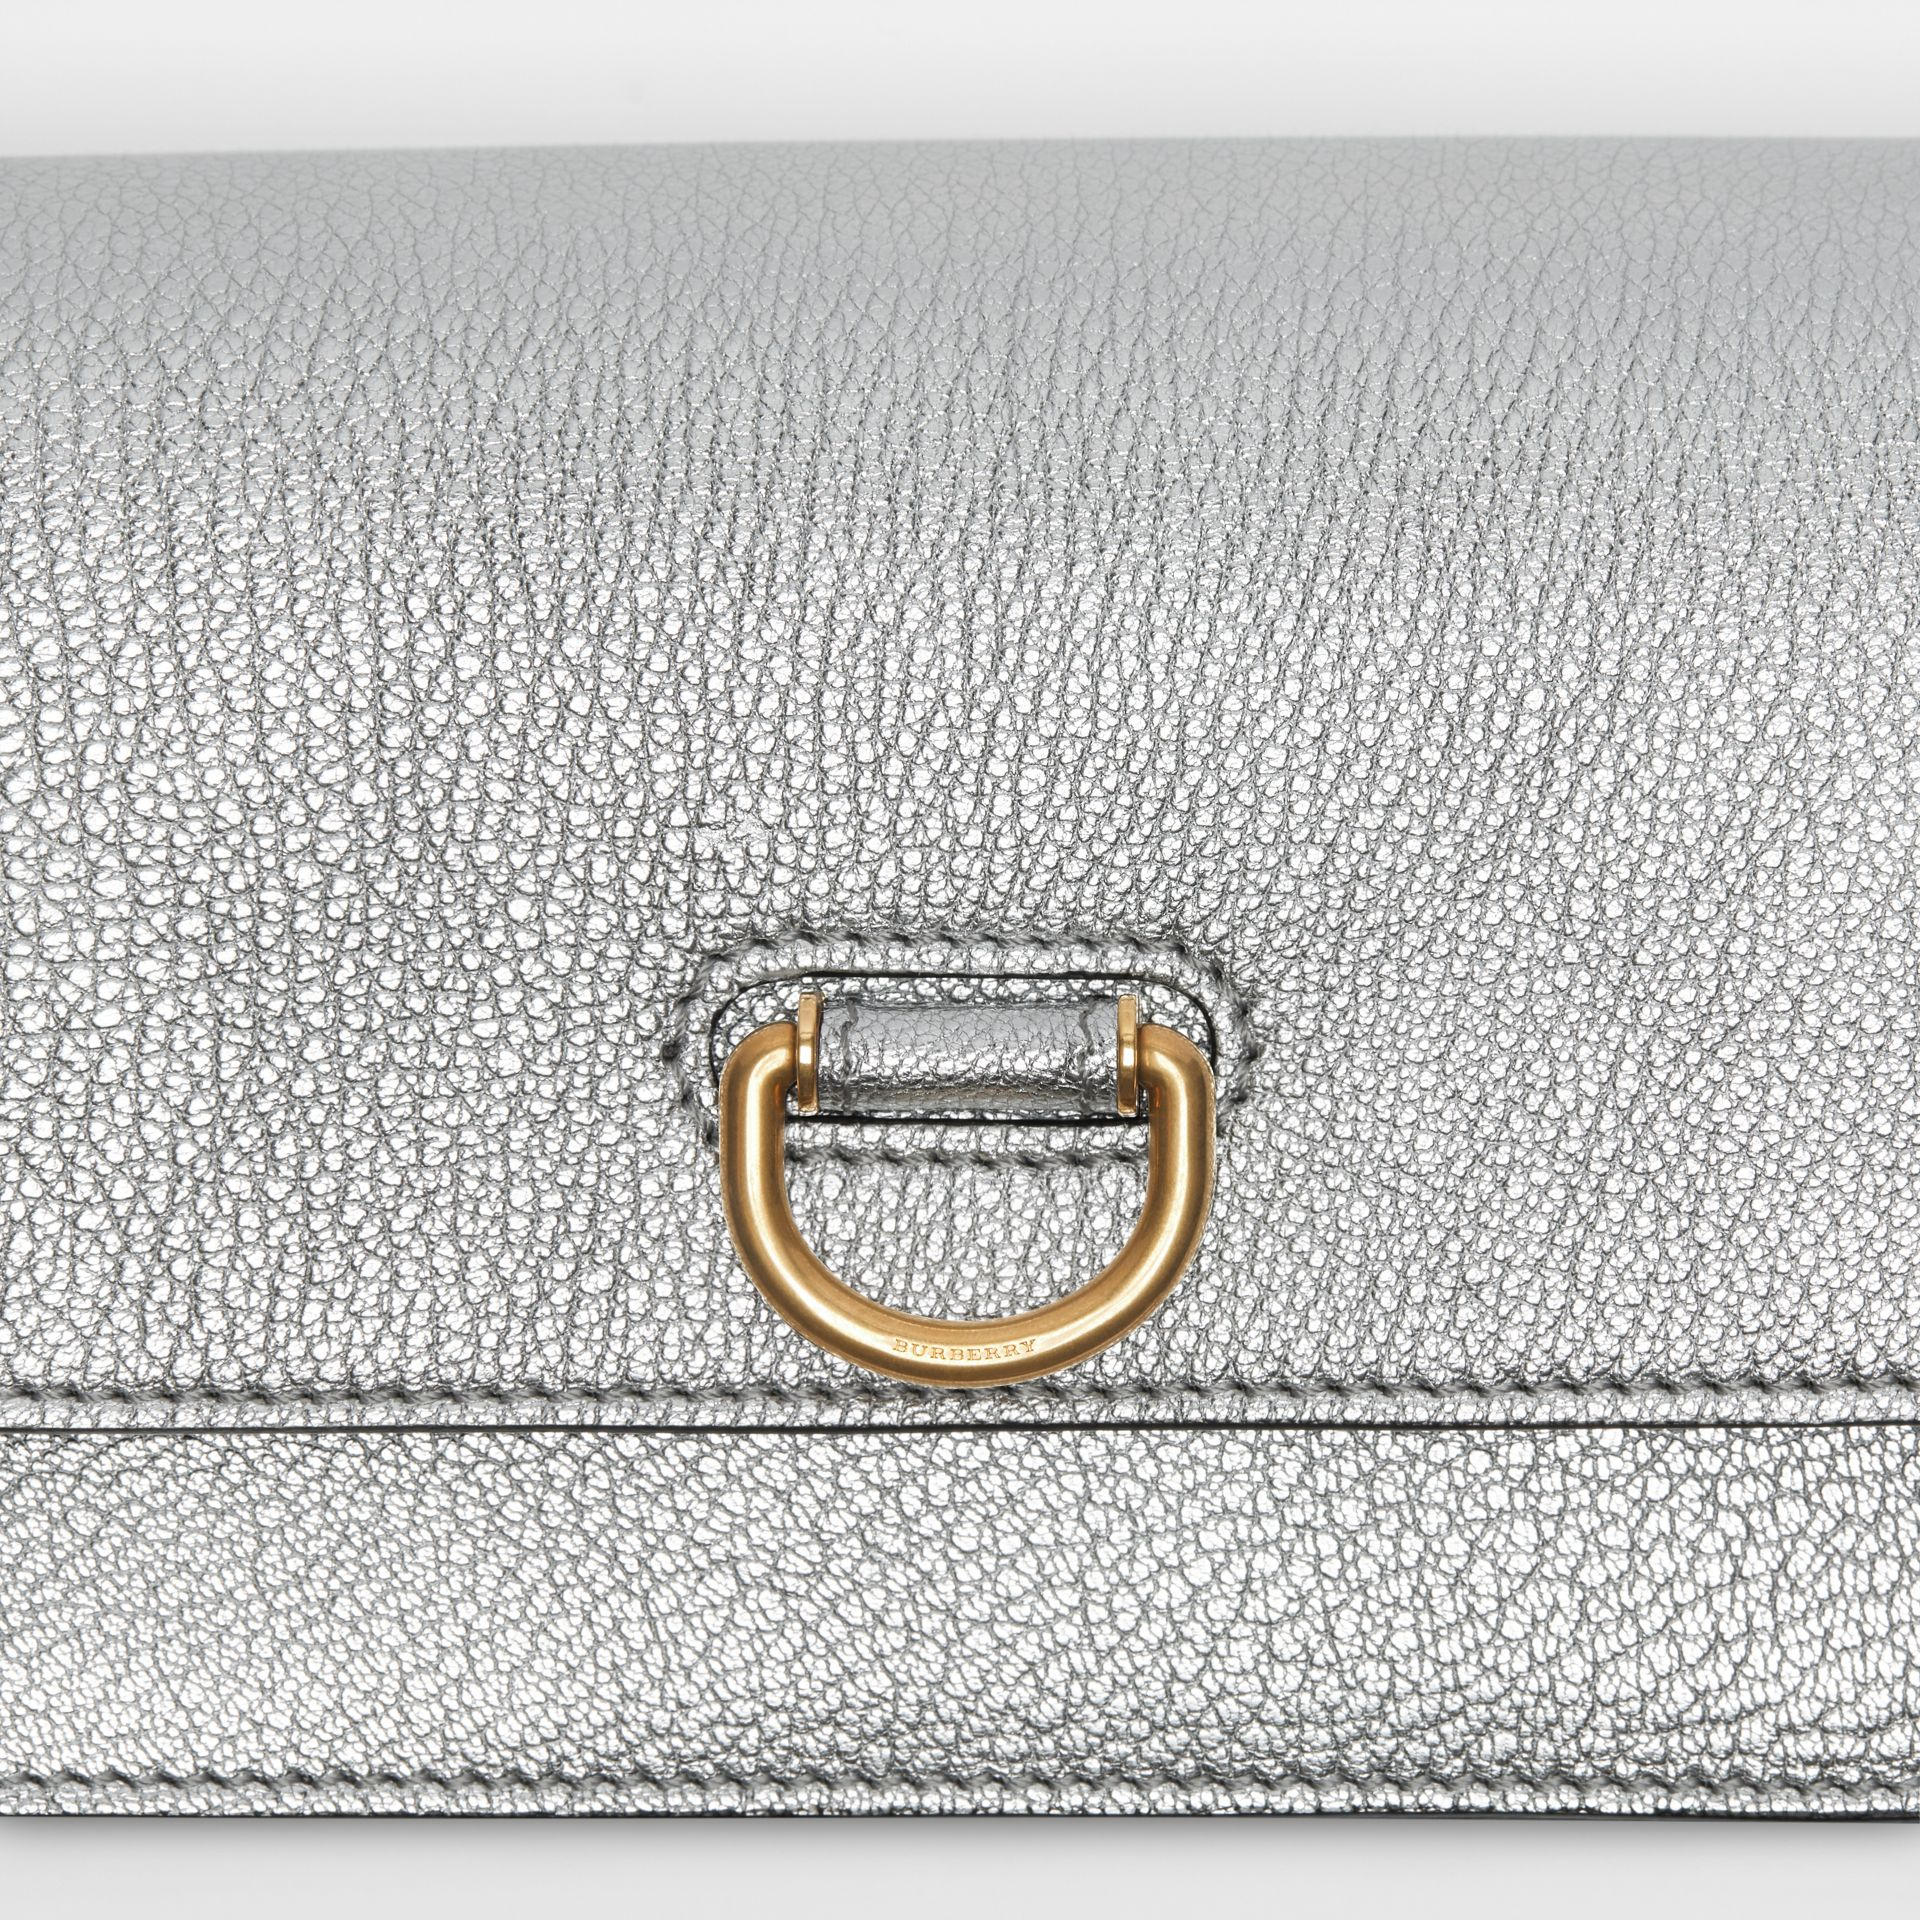 Mini sac The D-ring en cuir (Argent) - Femme | Burberry Canada - photo de la galerie 1